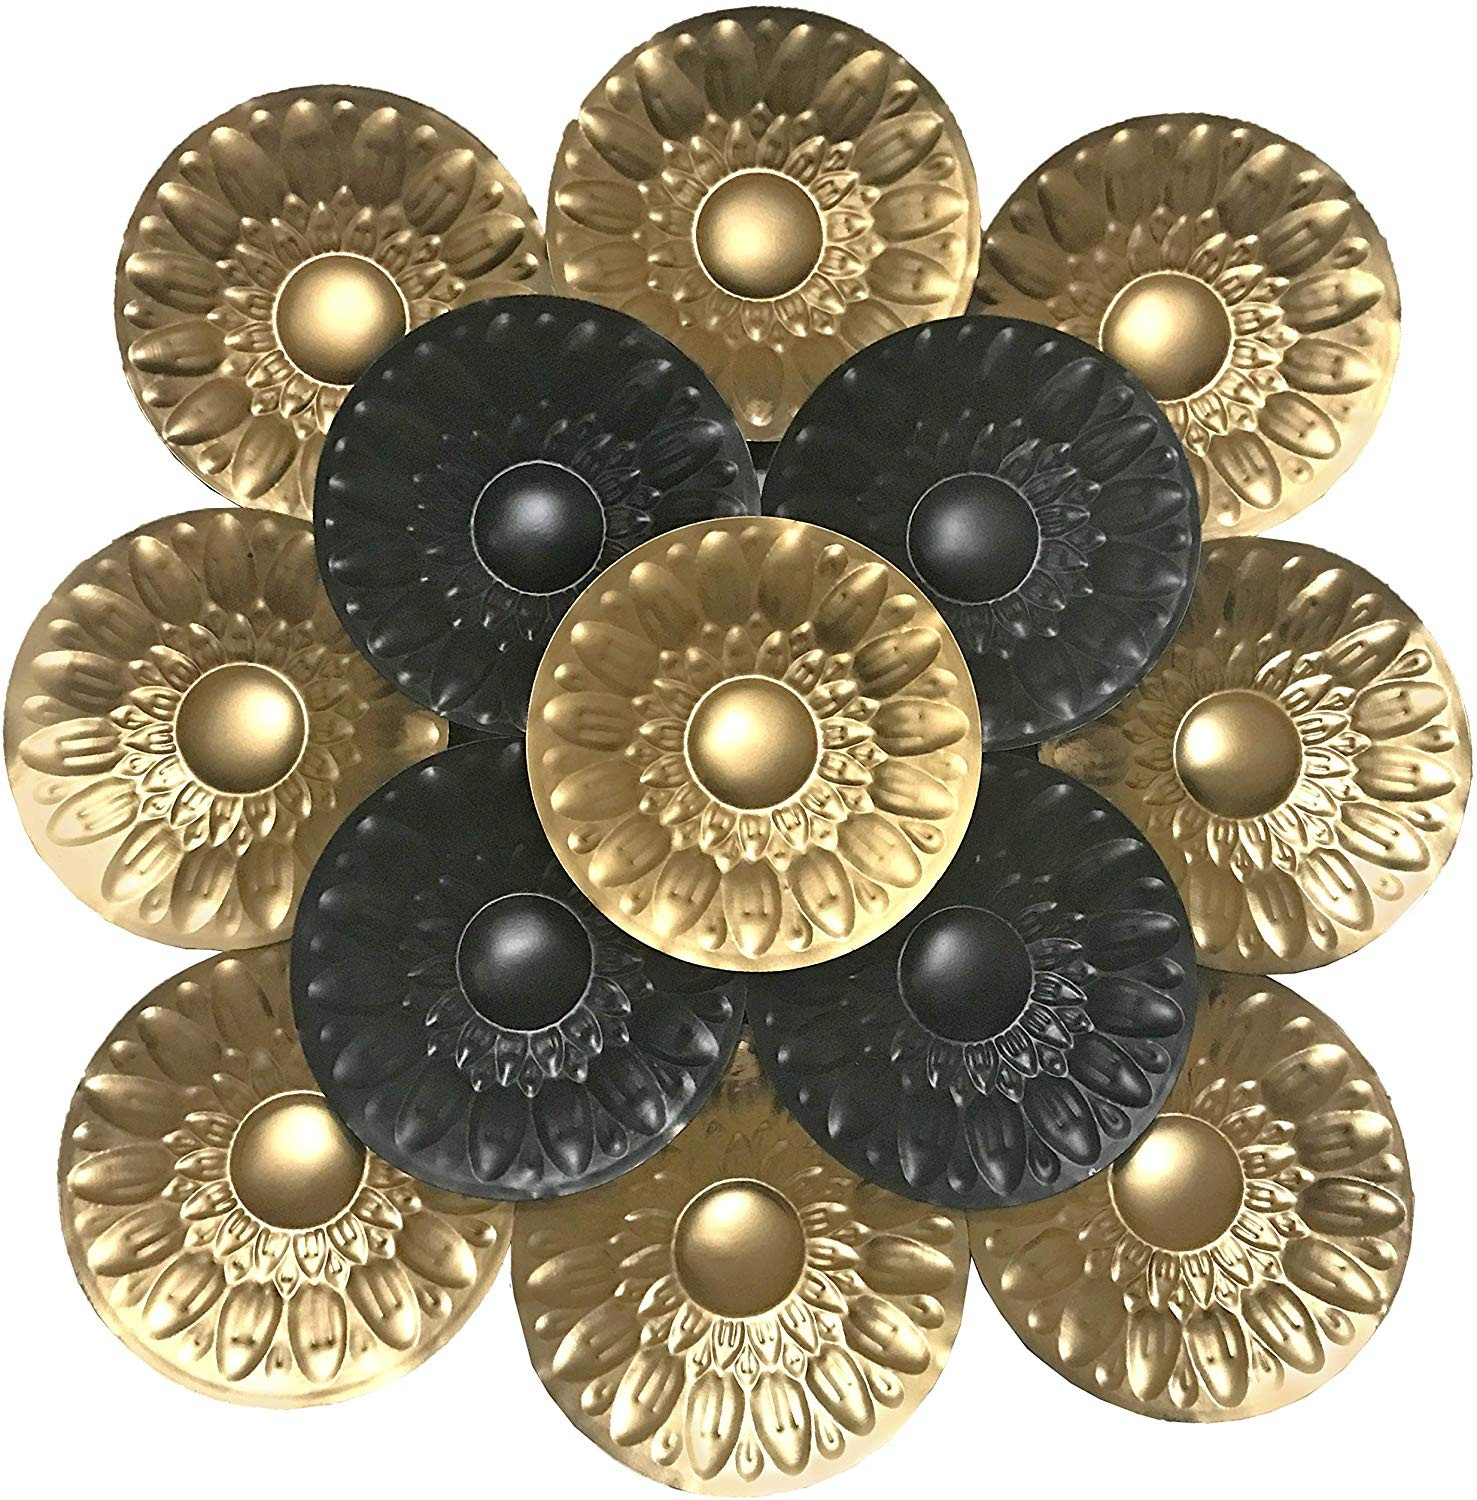 Decorshore Contemporary Large Metal Wall Art In Black Gold For Wall Decor Decorshore